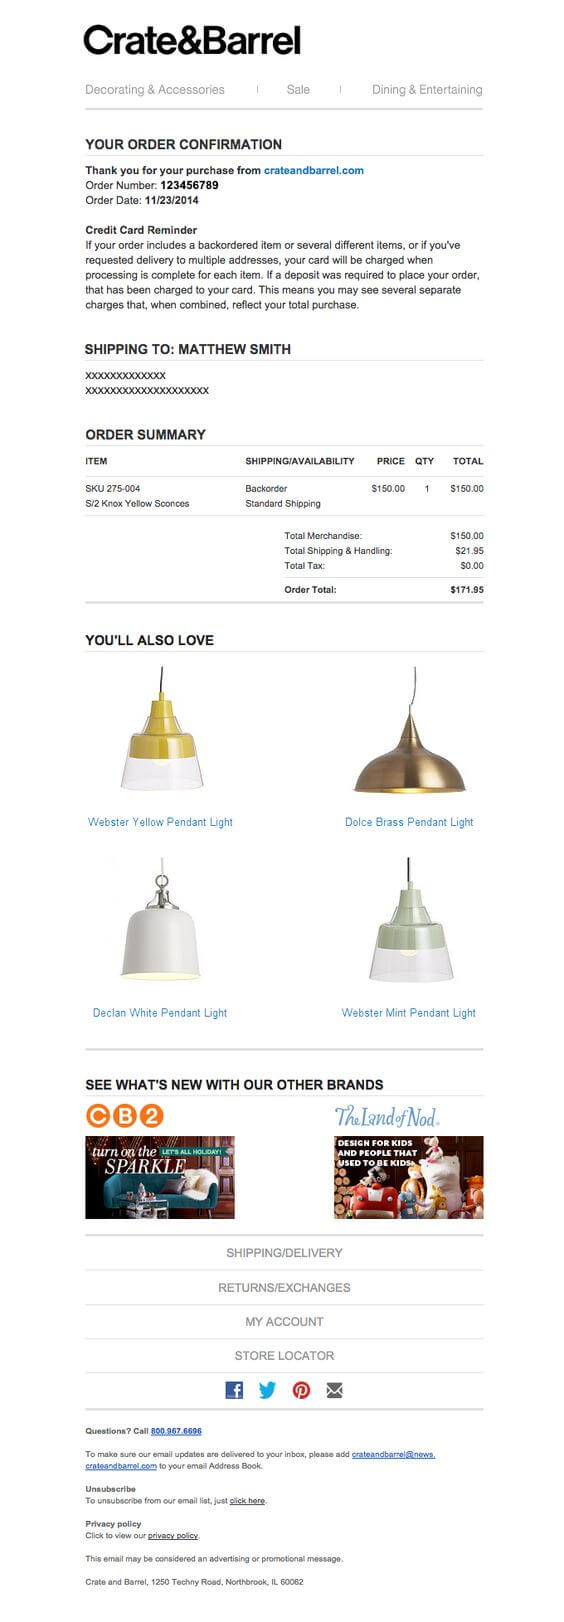 Transactional email sample by Crate & Barrel